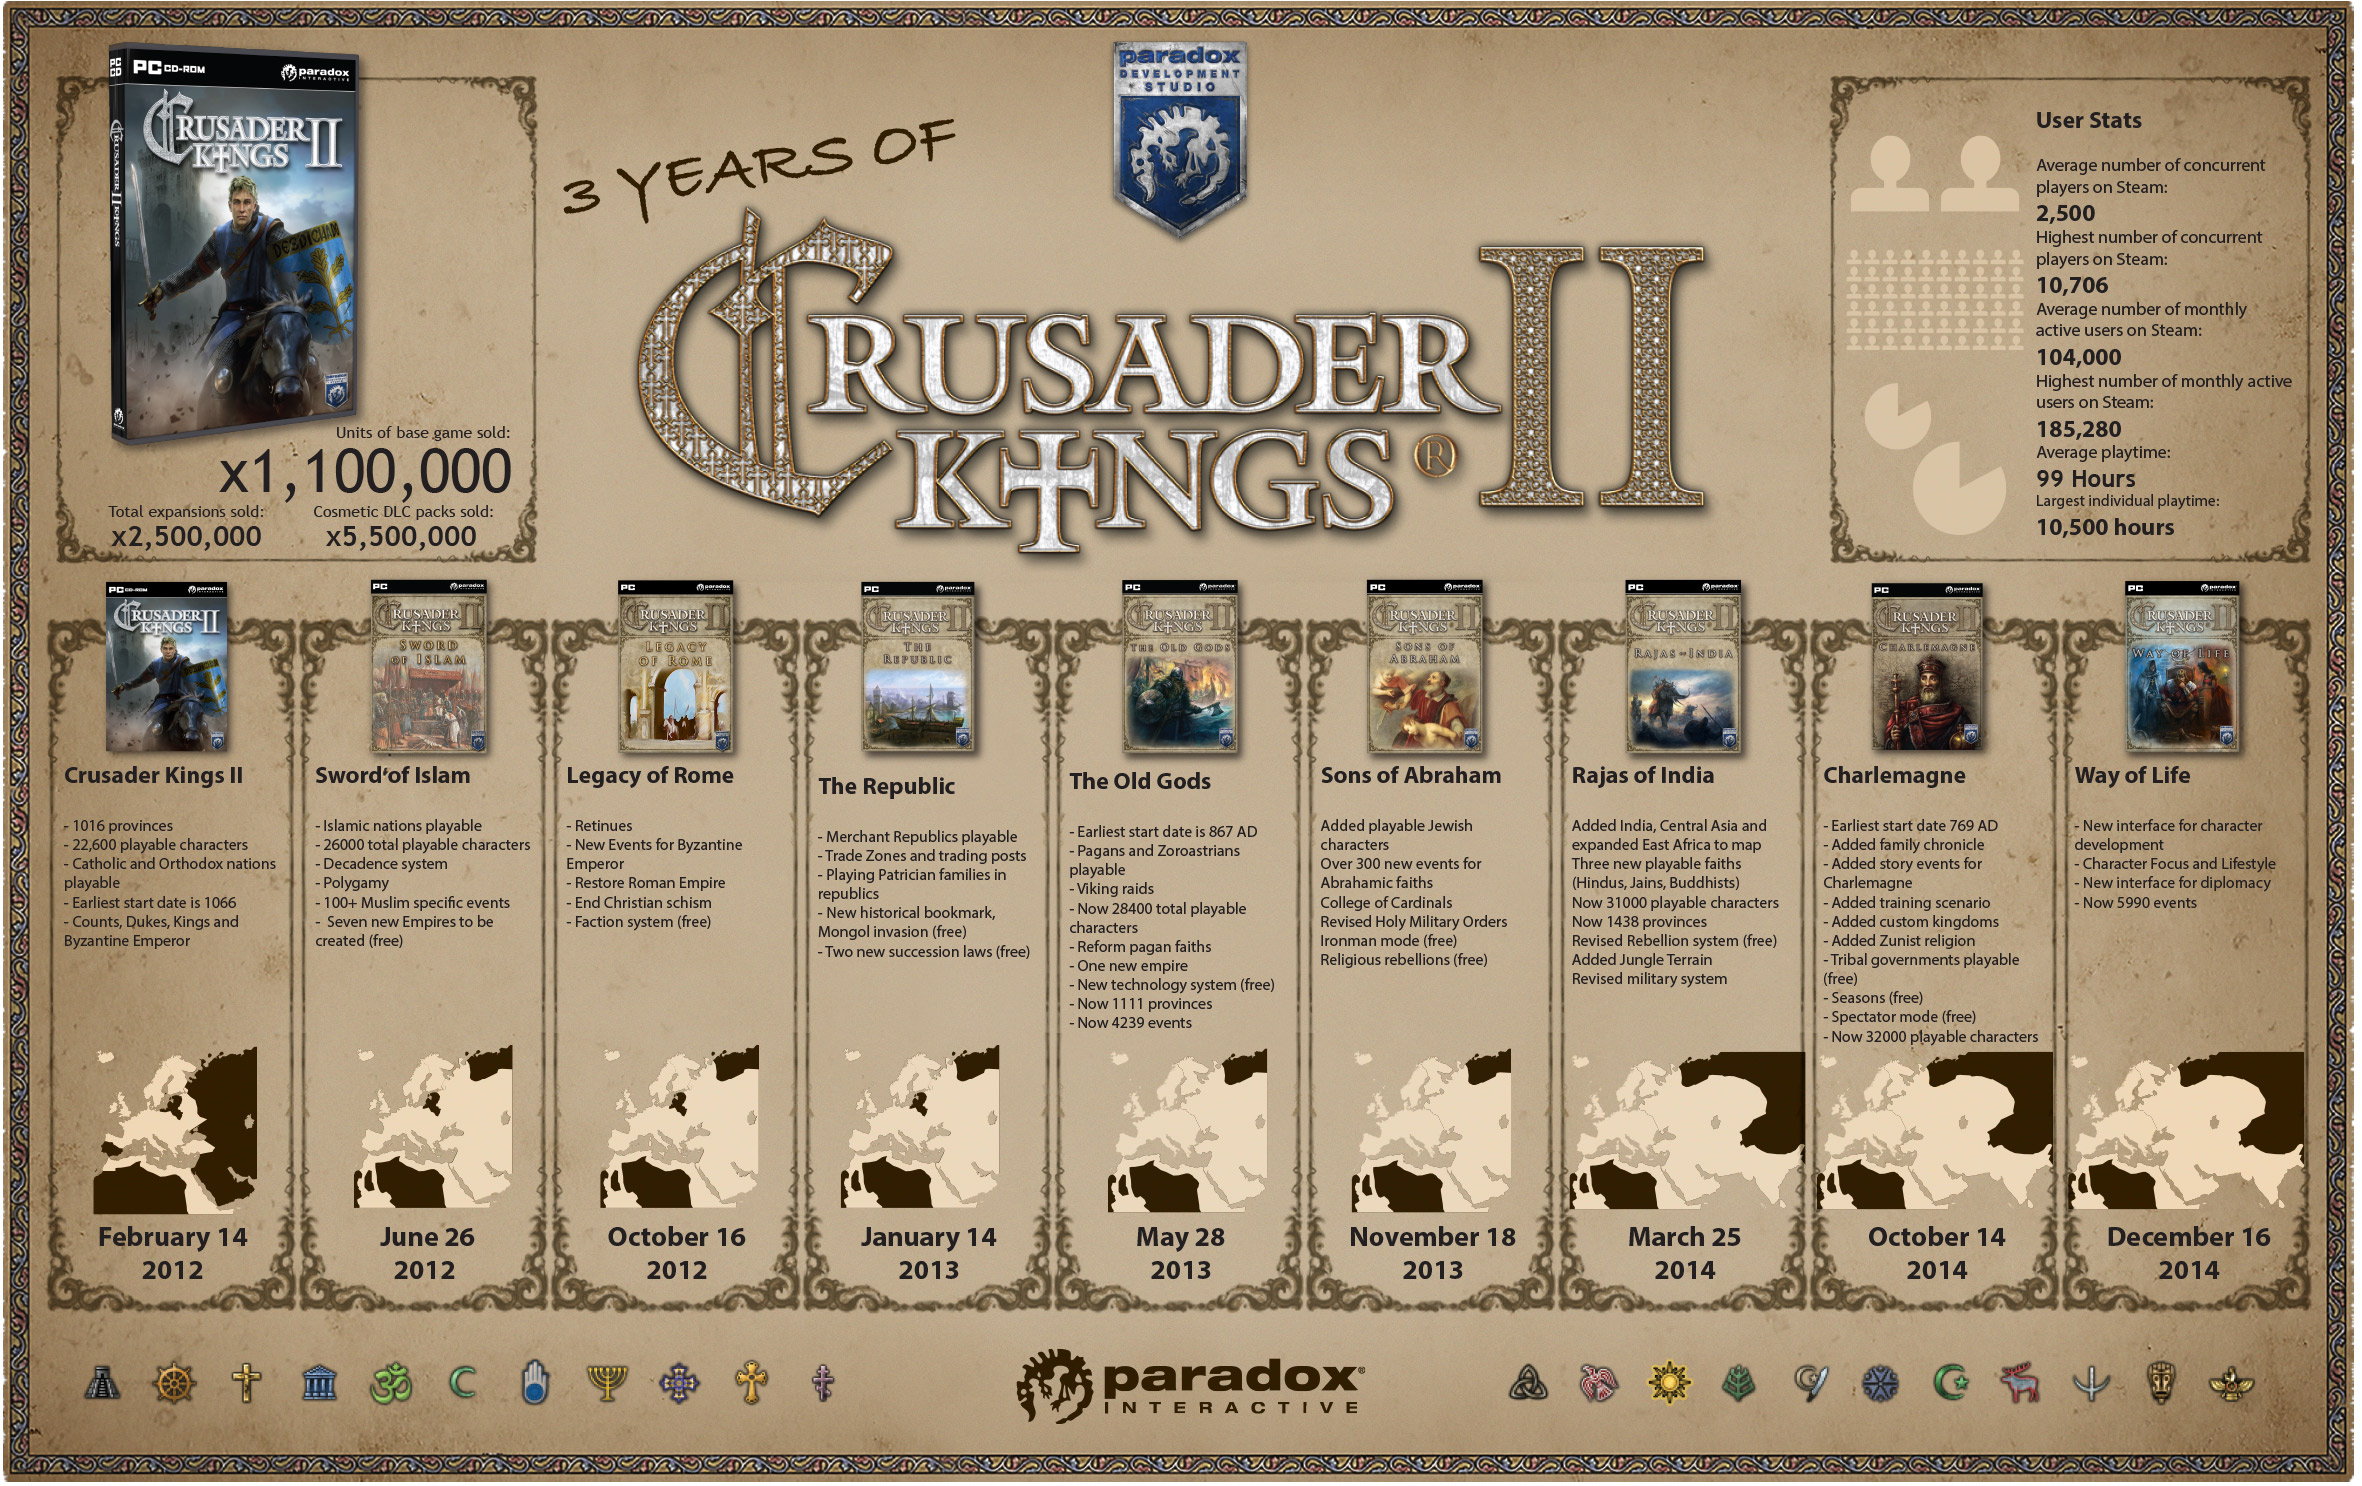 Pictures of The Three Year Reign of Crusader Kings II 8/8